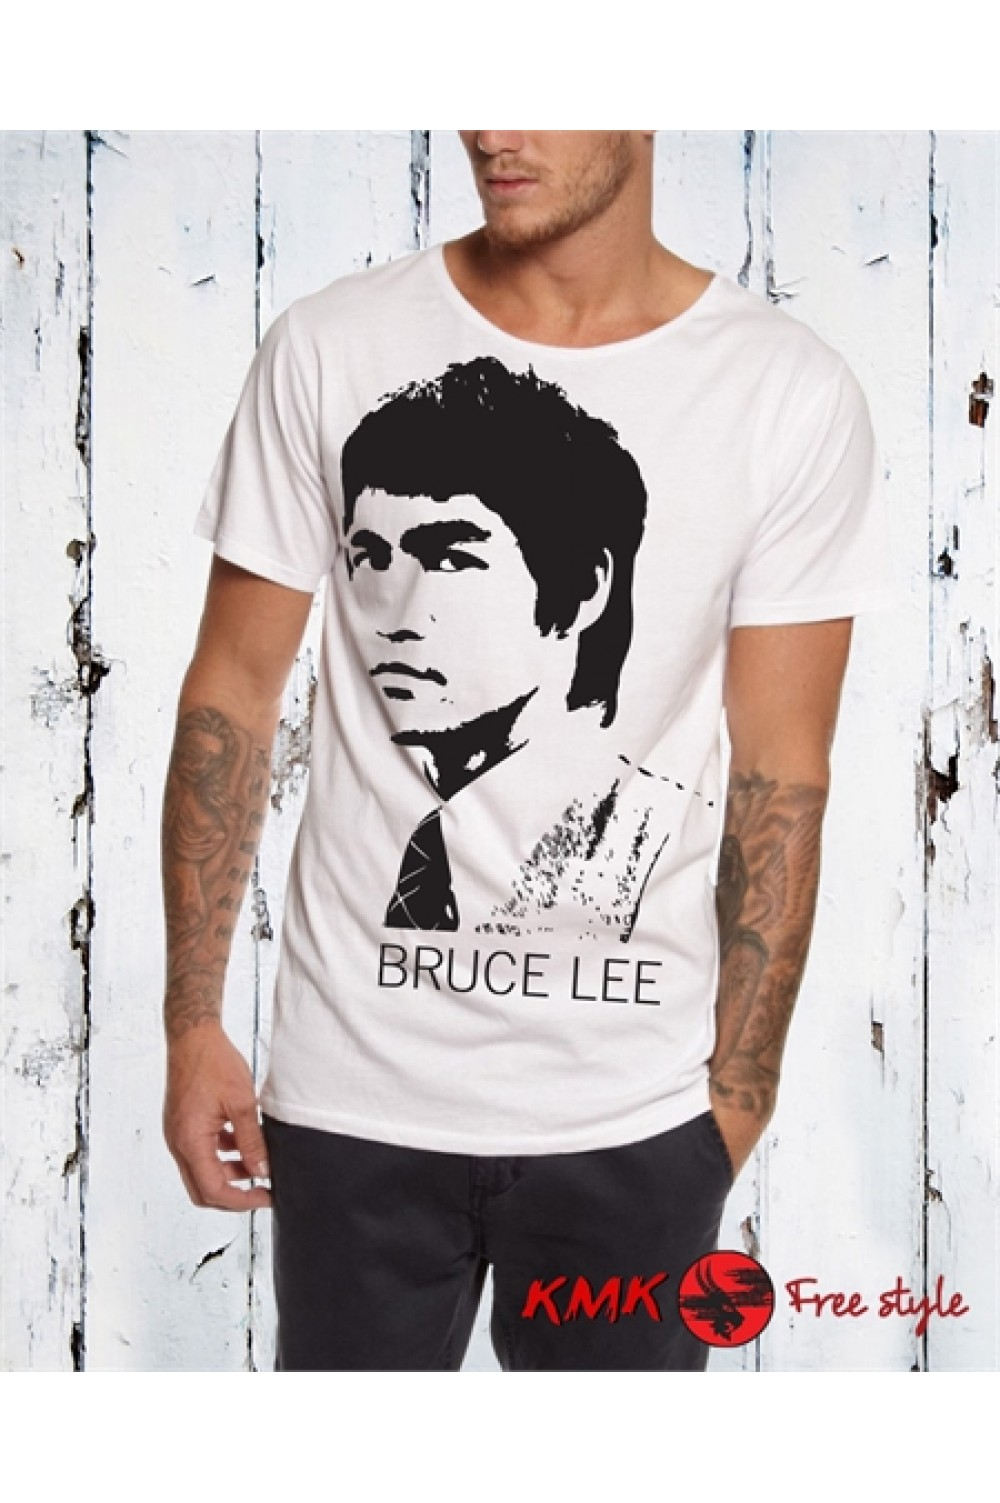 BRUCE LEE 2 Printed T shirt | Bruce Lee Tanktop | Bruce Lee Tee | Motivation Shirt